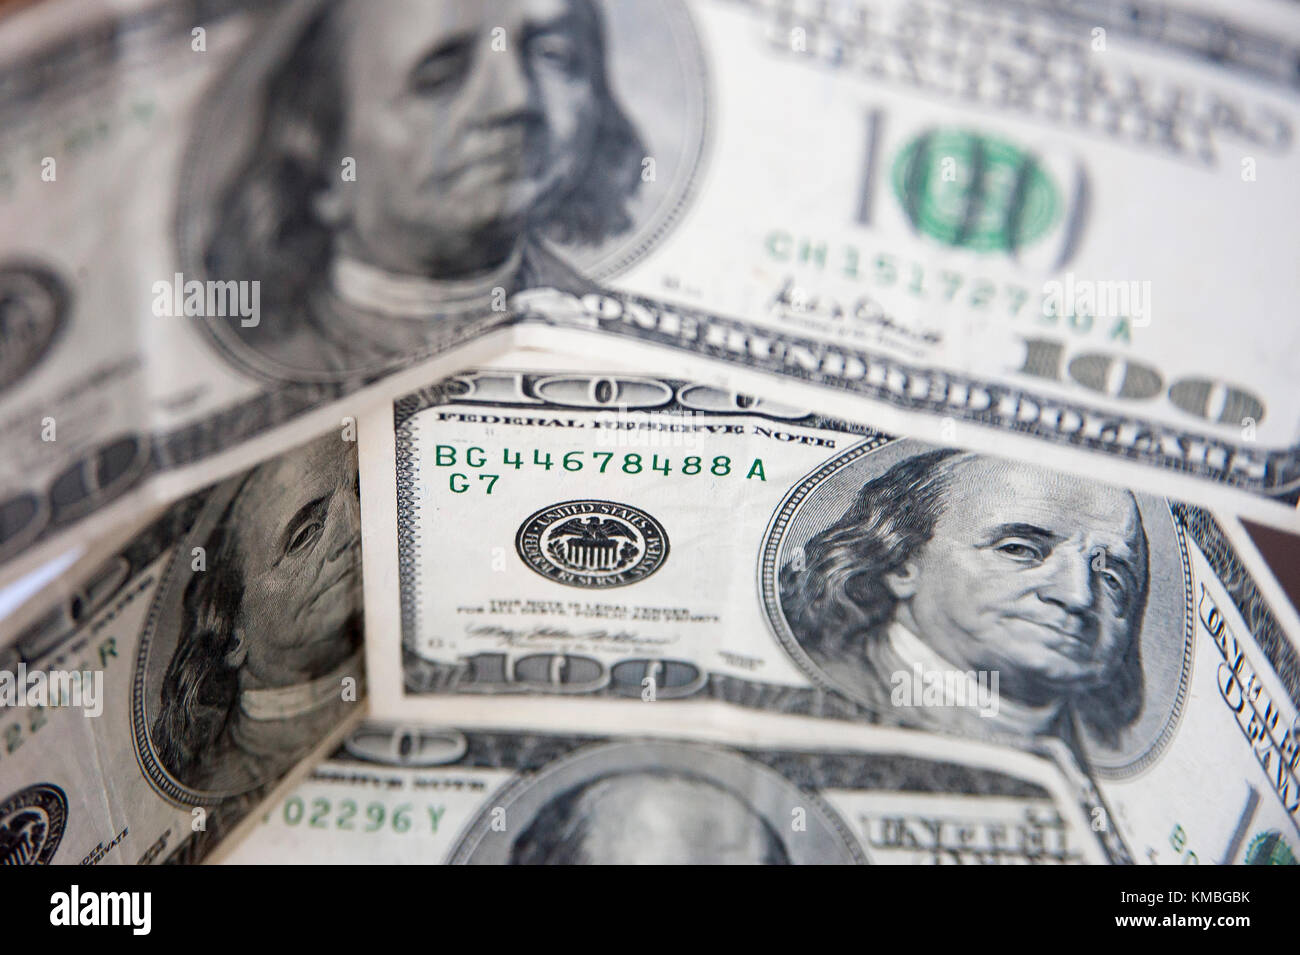 The United States one hundred-dollar bill ($100) with Benjamin Franklin © Wojciech Strozyk / Alamy Stock Photo - Stock Image